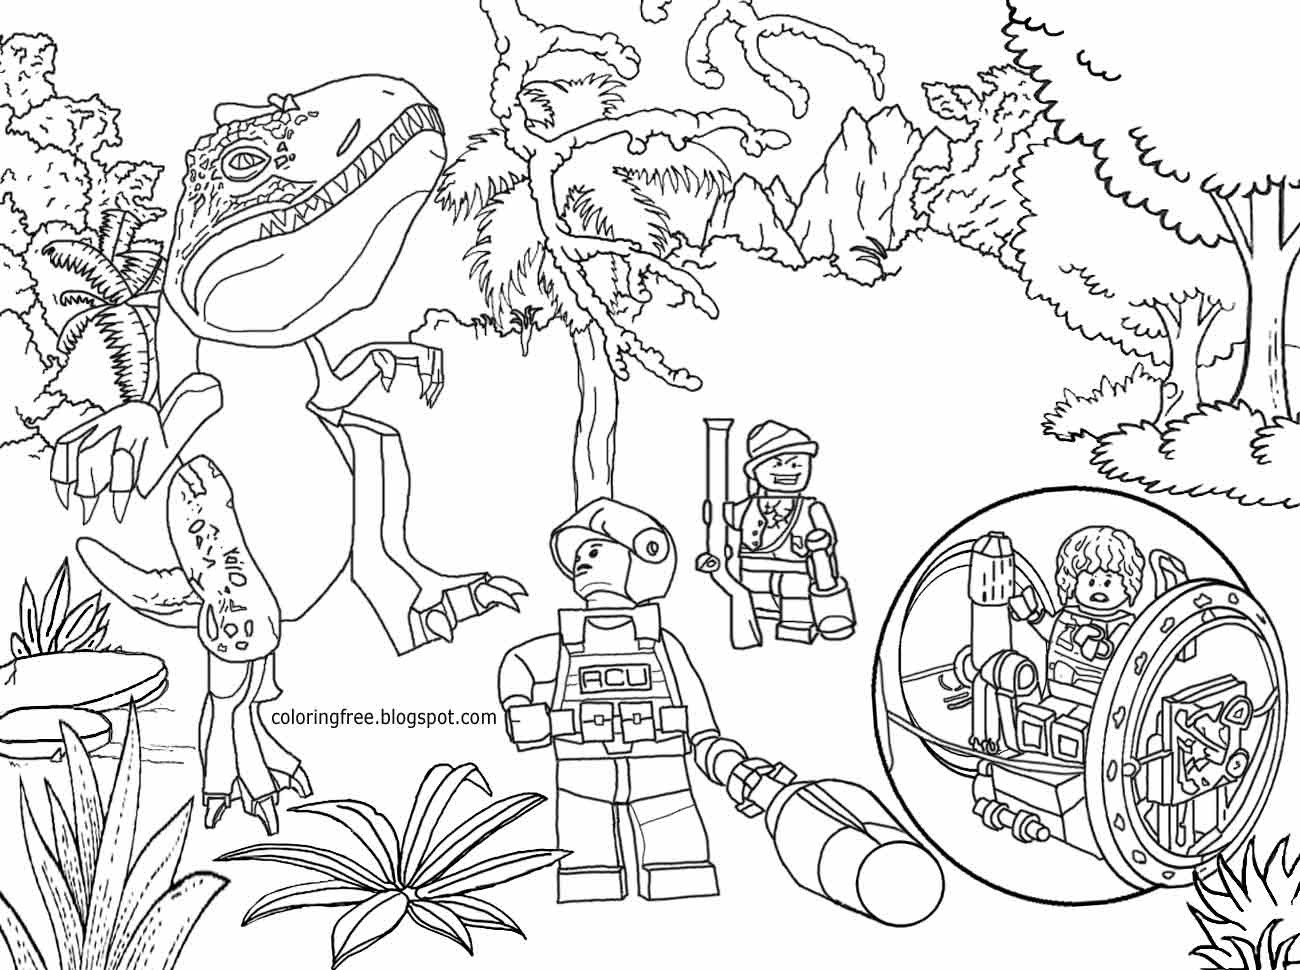 1300x970 Jurassic Park Coloring Pages Awesome Lets Coloring Book Caveman